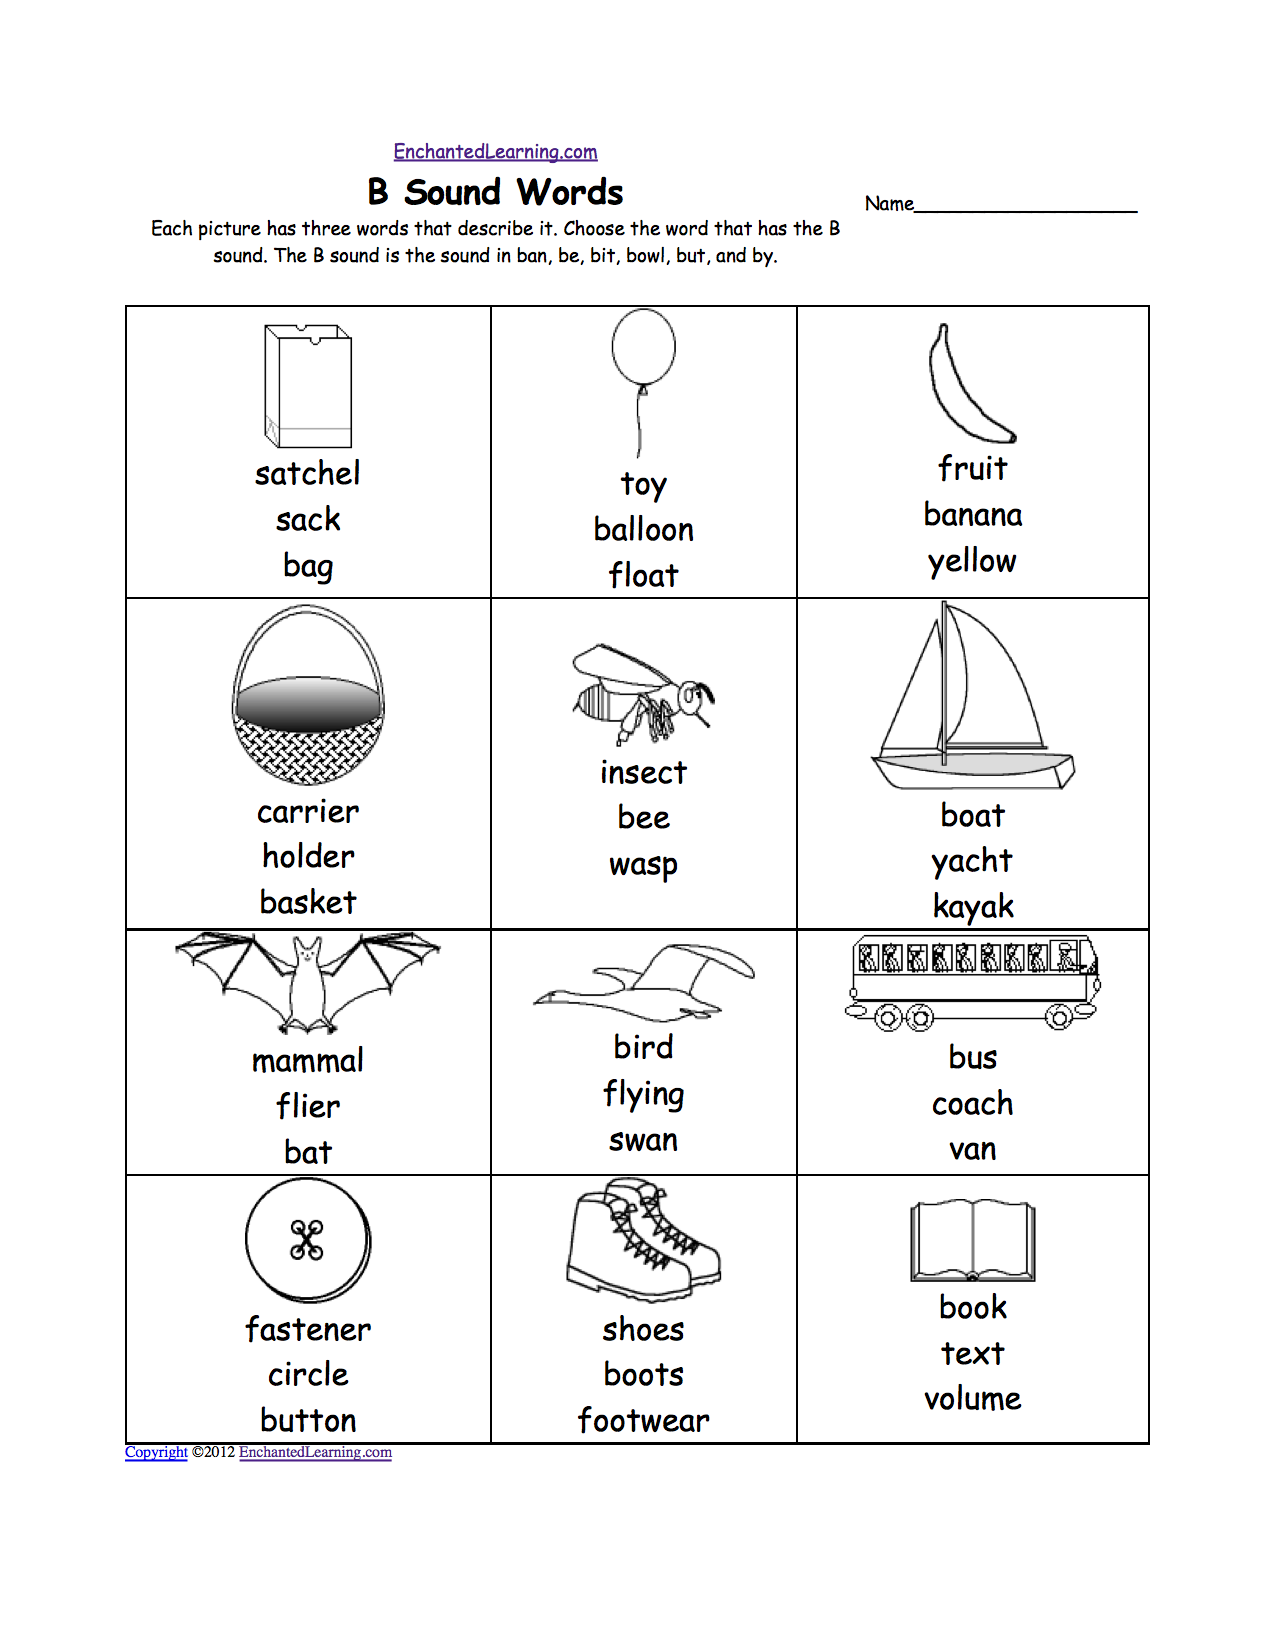 Aldiablosus  Nice Phonics Worksheets Multiple Choice Worksheets To Print  With Extraordinary Quotbquot Sound Phonics Worksheet Multiple Choice Each Picture Has Three Words That Describe It Choose The Word That Has A Quotbquot Sound The Quotbquot Sound Is The Sound  With Astonishing Math Worksheet For Pre K Also Printable Figurative Language Worksheets In Addition Grade  Vocabulary Worksheets And Indirect And Direct Objects Worksheets As Well As Pronoun Worksheets For Rd Grade Additionally Prime Numbers And Composite Numbers Worksheet From Enchantedlearningcom With Aldiablosus  Extraordinary Phonics Worksheets Multiple Choice Worksheets To Print  With Astonishing Quotbquot Sound Phonics Worksheet Multiple Choice Each Picture Has Three Words That Describe It Choose The Word That Has A Quotbquot Sound The Quotbquot Sound Is The Sound  And Nice Math Worksheet For Pre K Also Printable Figurative Language Worksheets In Addition Grade  Vocabulary Worksheets From Enchantedlearningcom